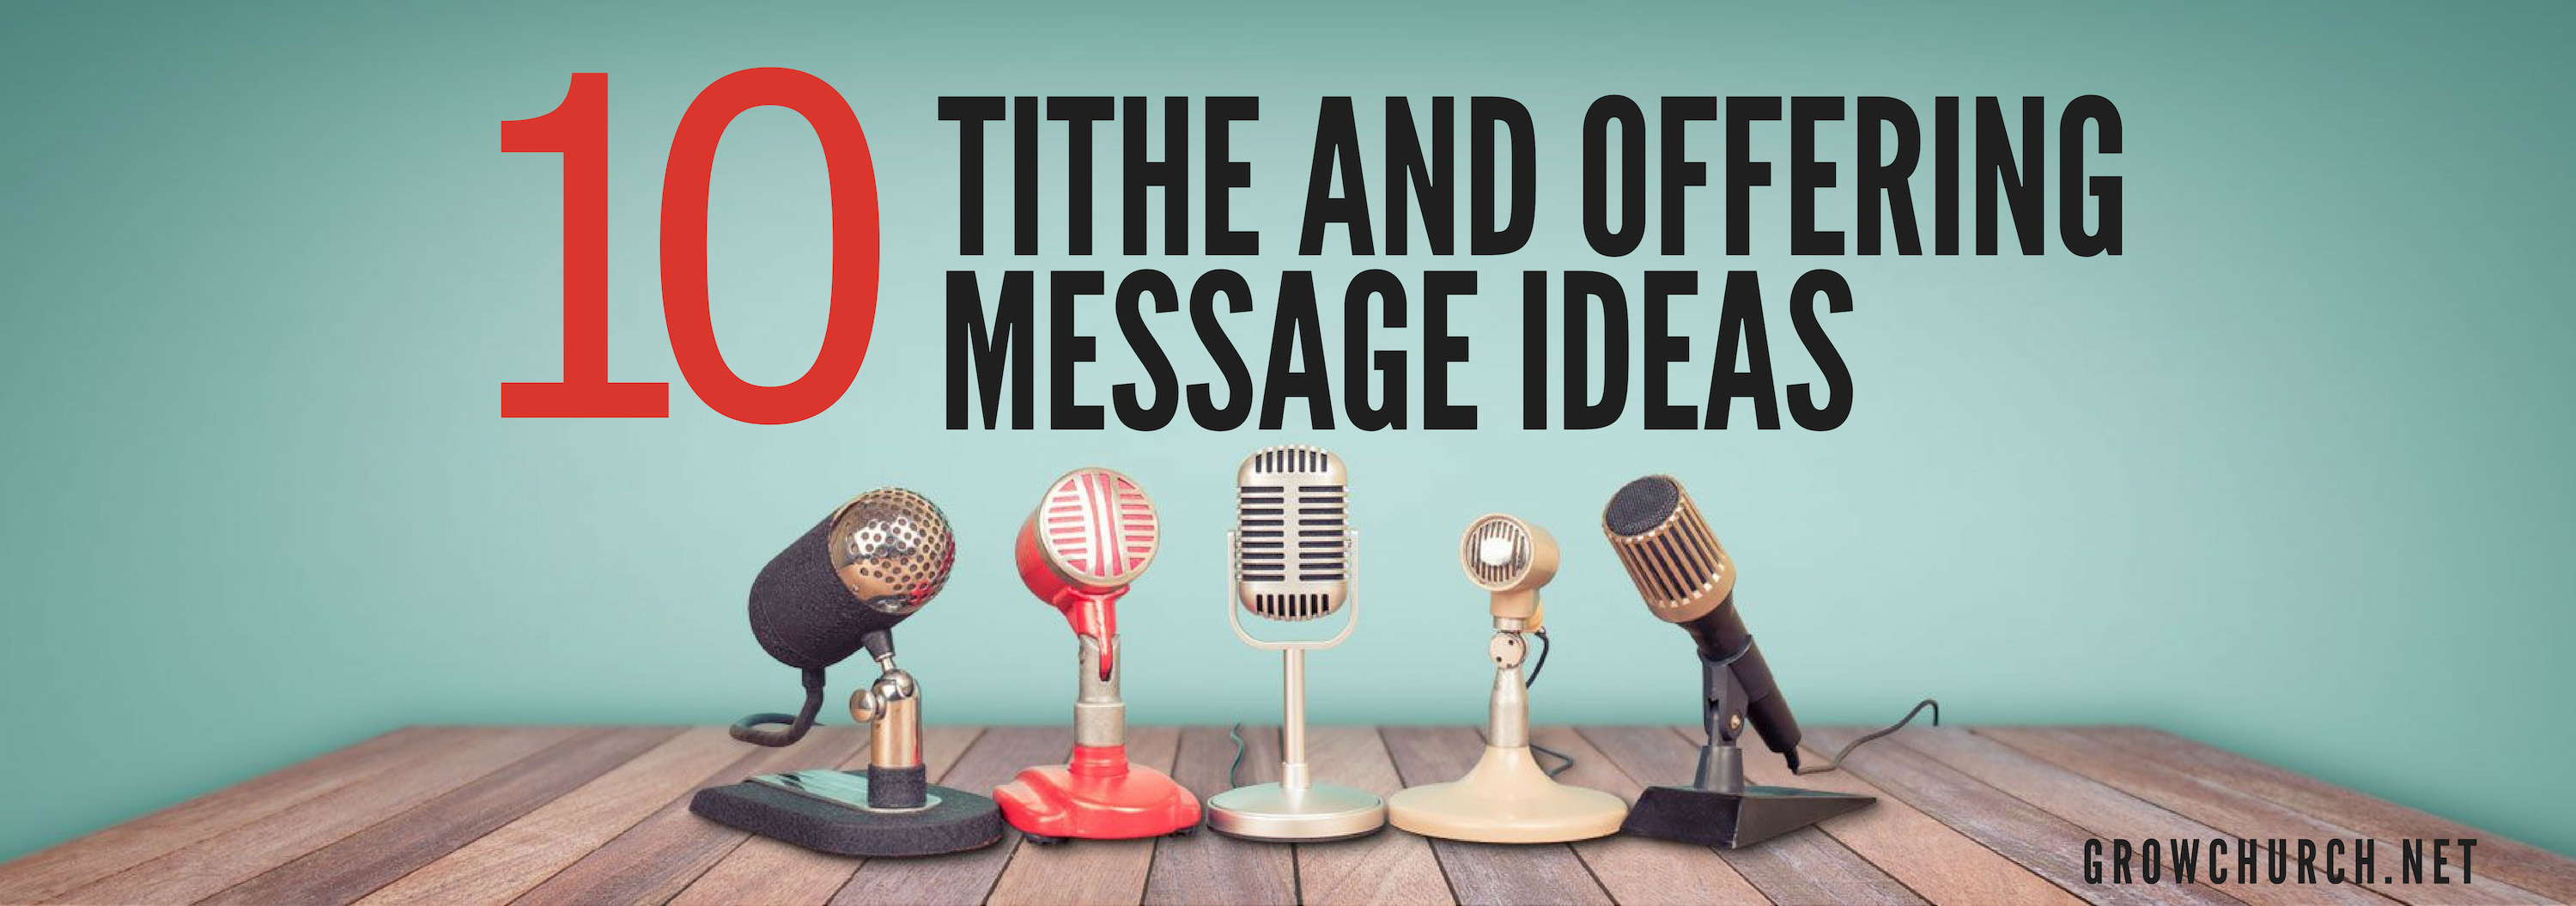 Tithe And Offering Message Ideas